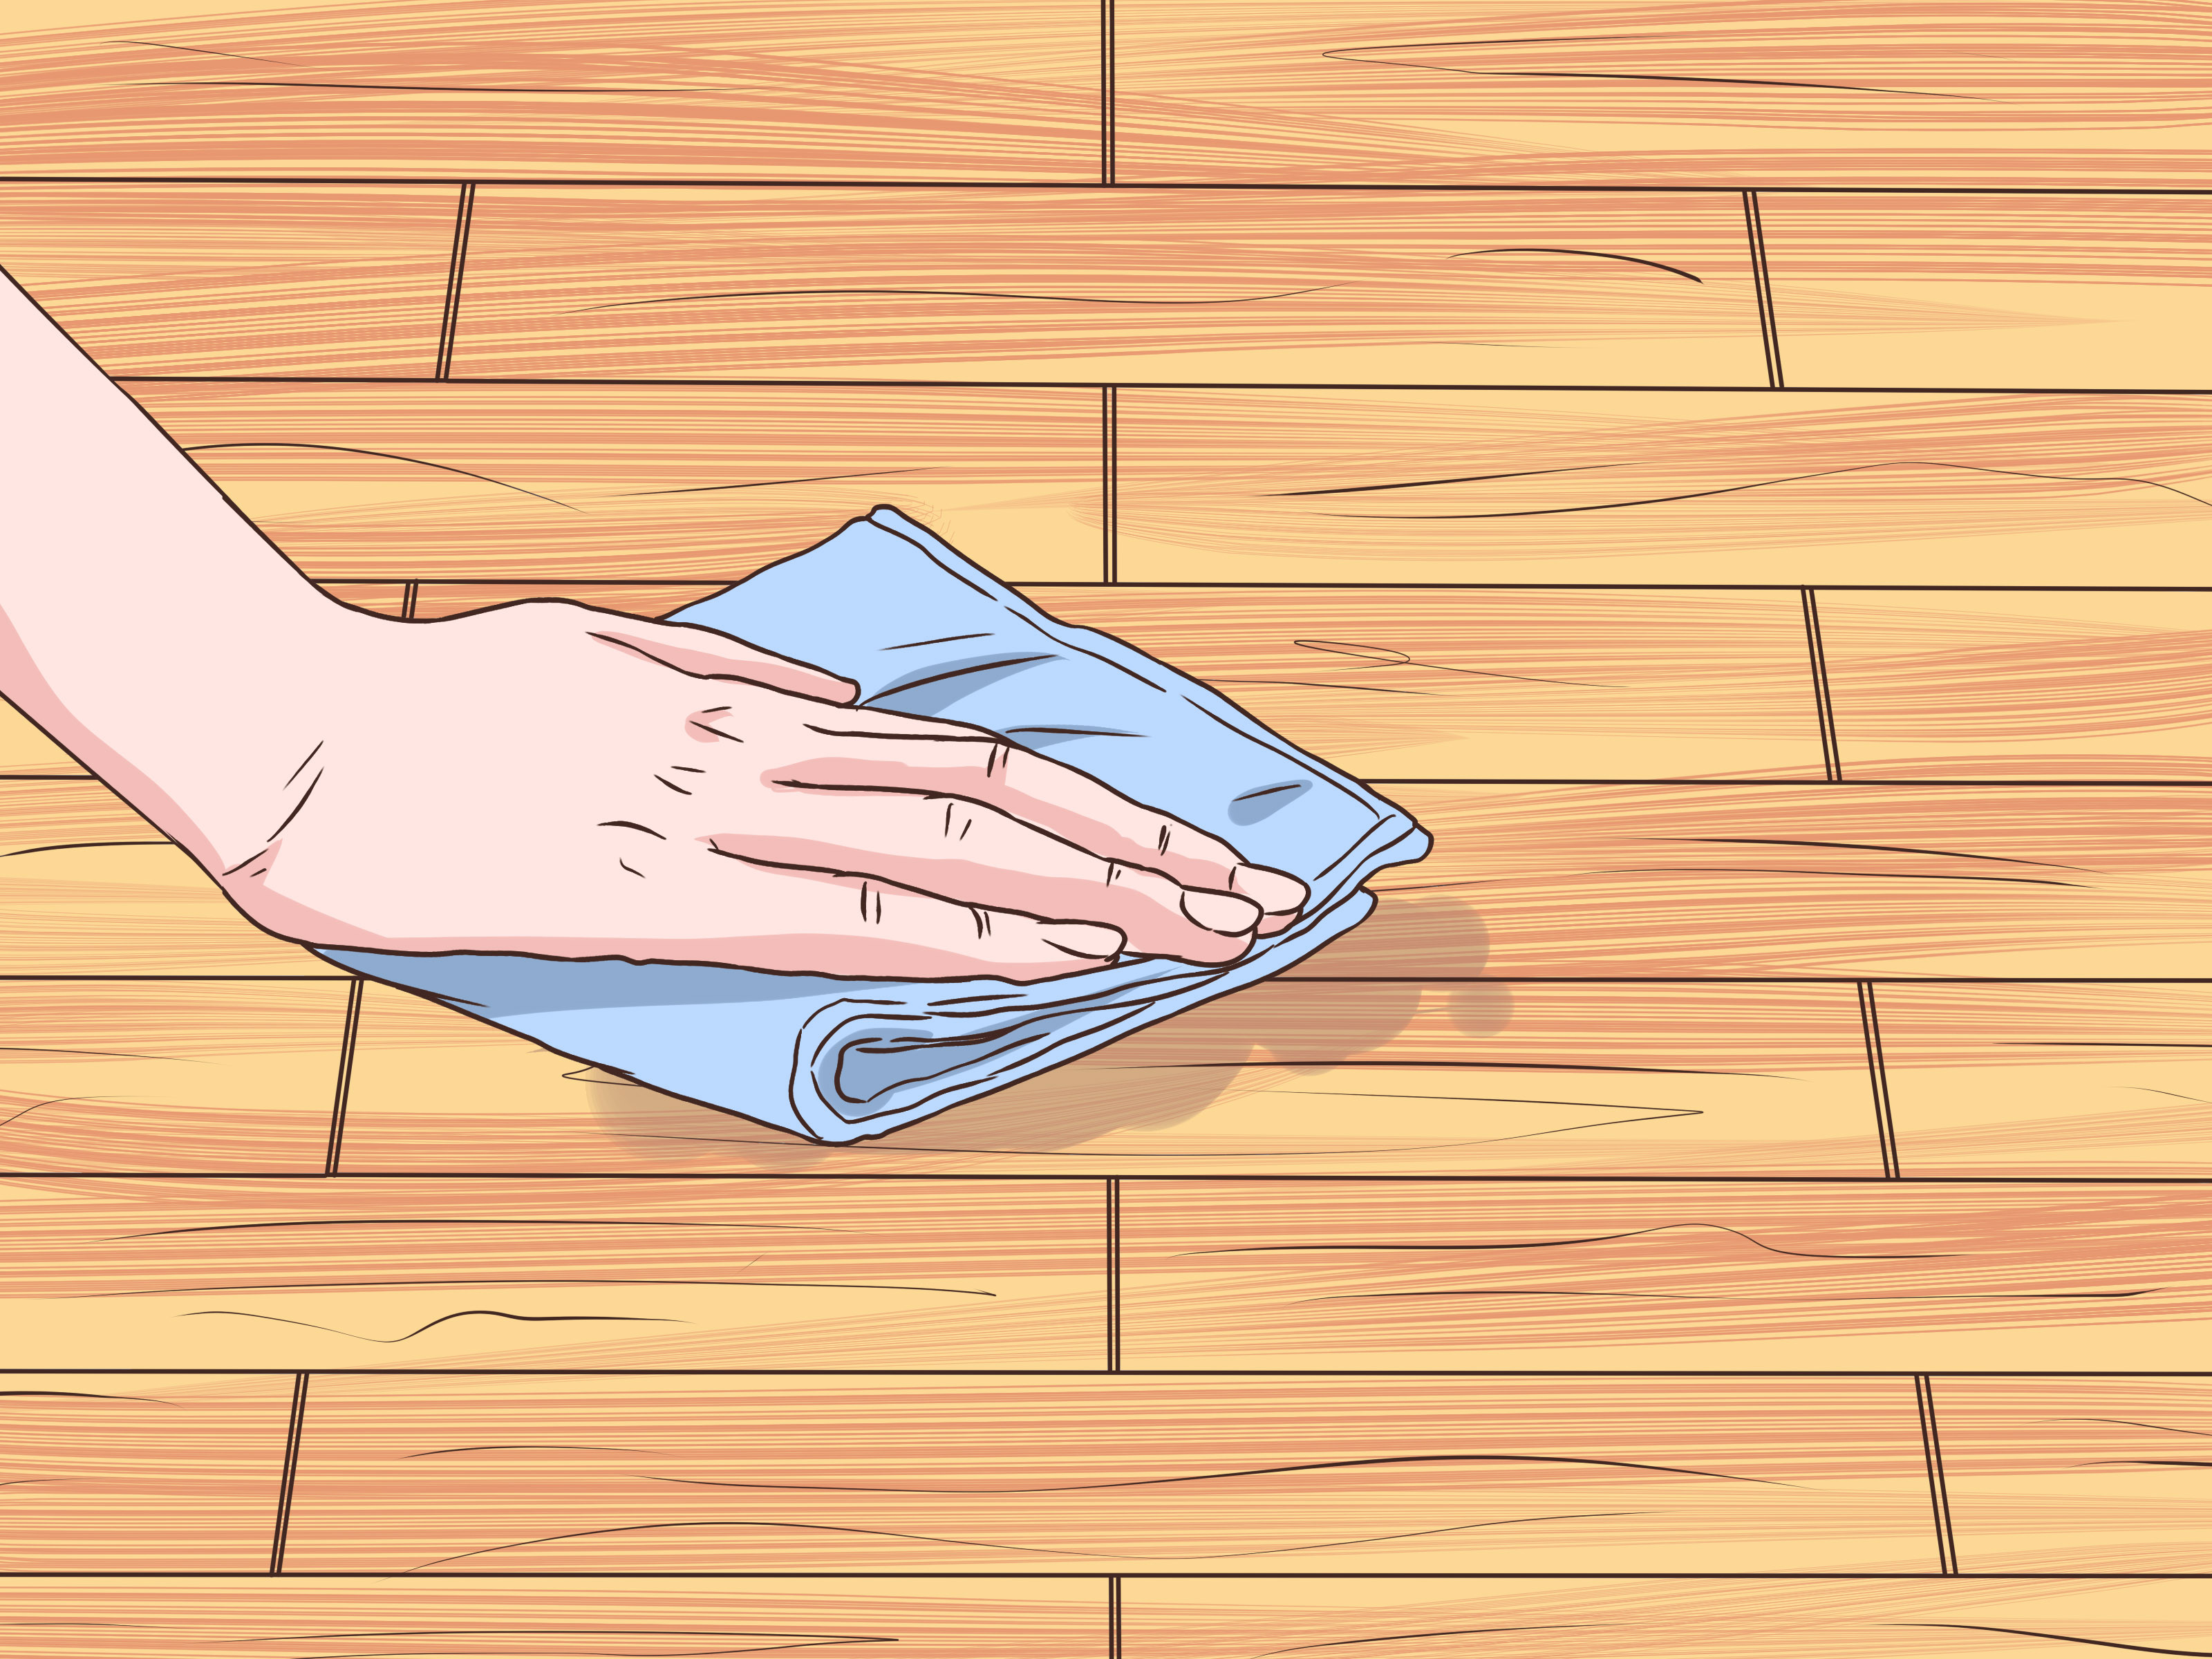 hardwood floor cleaner that leaves a shine of how to clean sticky hardwood floors 9 steps with pictures in clean sticky hardwood floors step 9